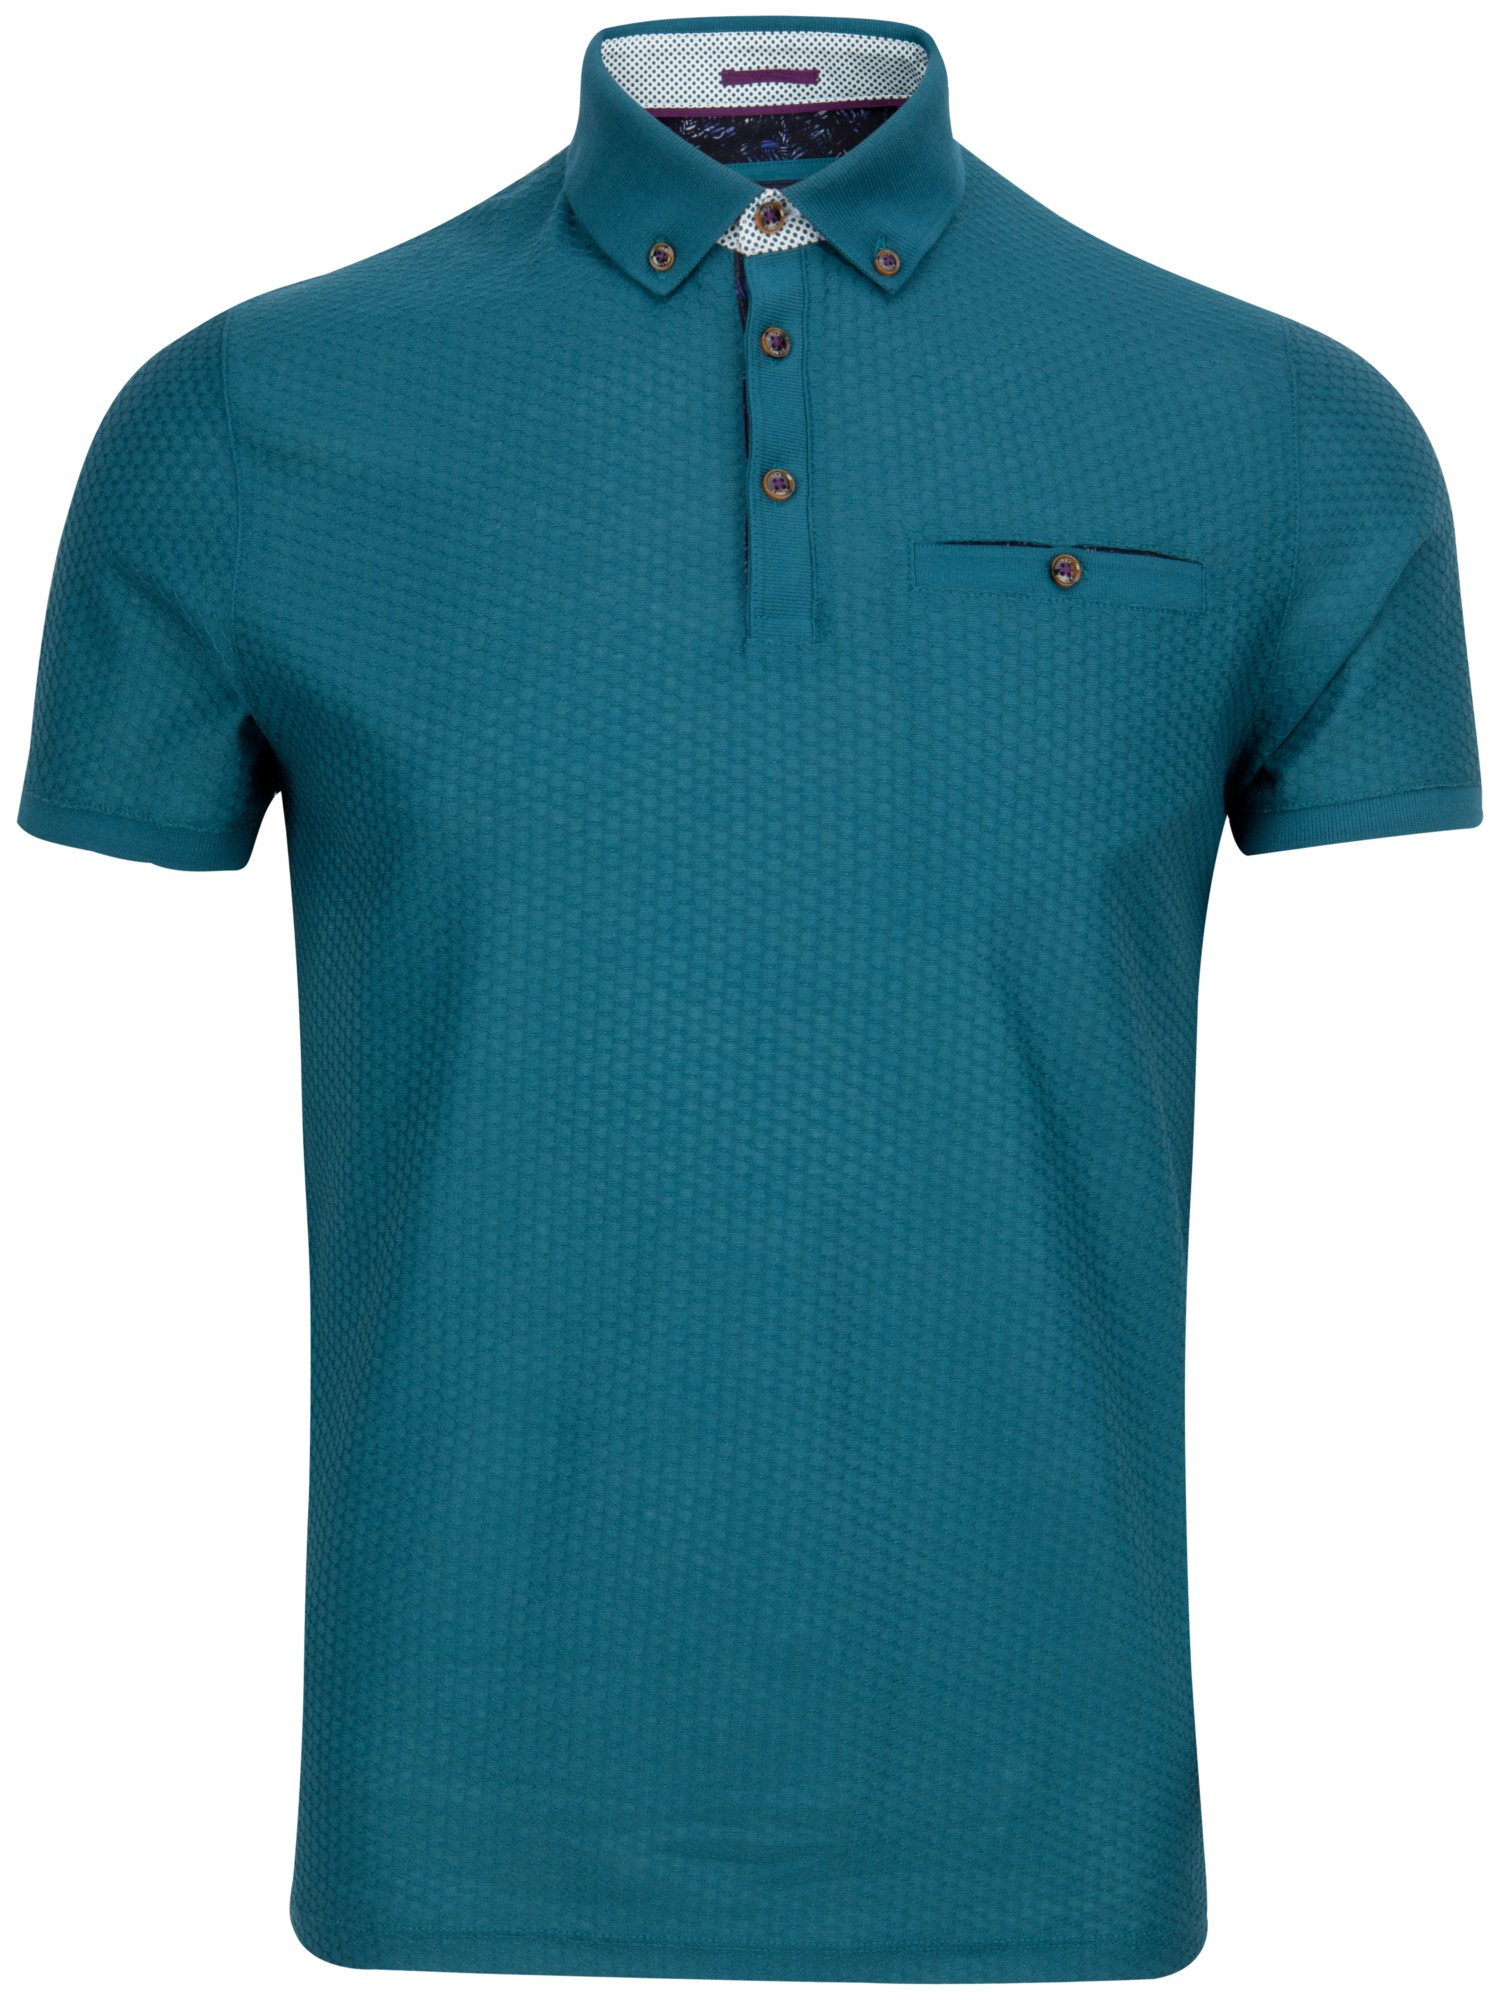 7ccc83eea6fa62 Ted Baker Tipytoe Geo Textured Polo Shirt in Blue for Men - Lyst